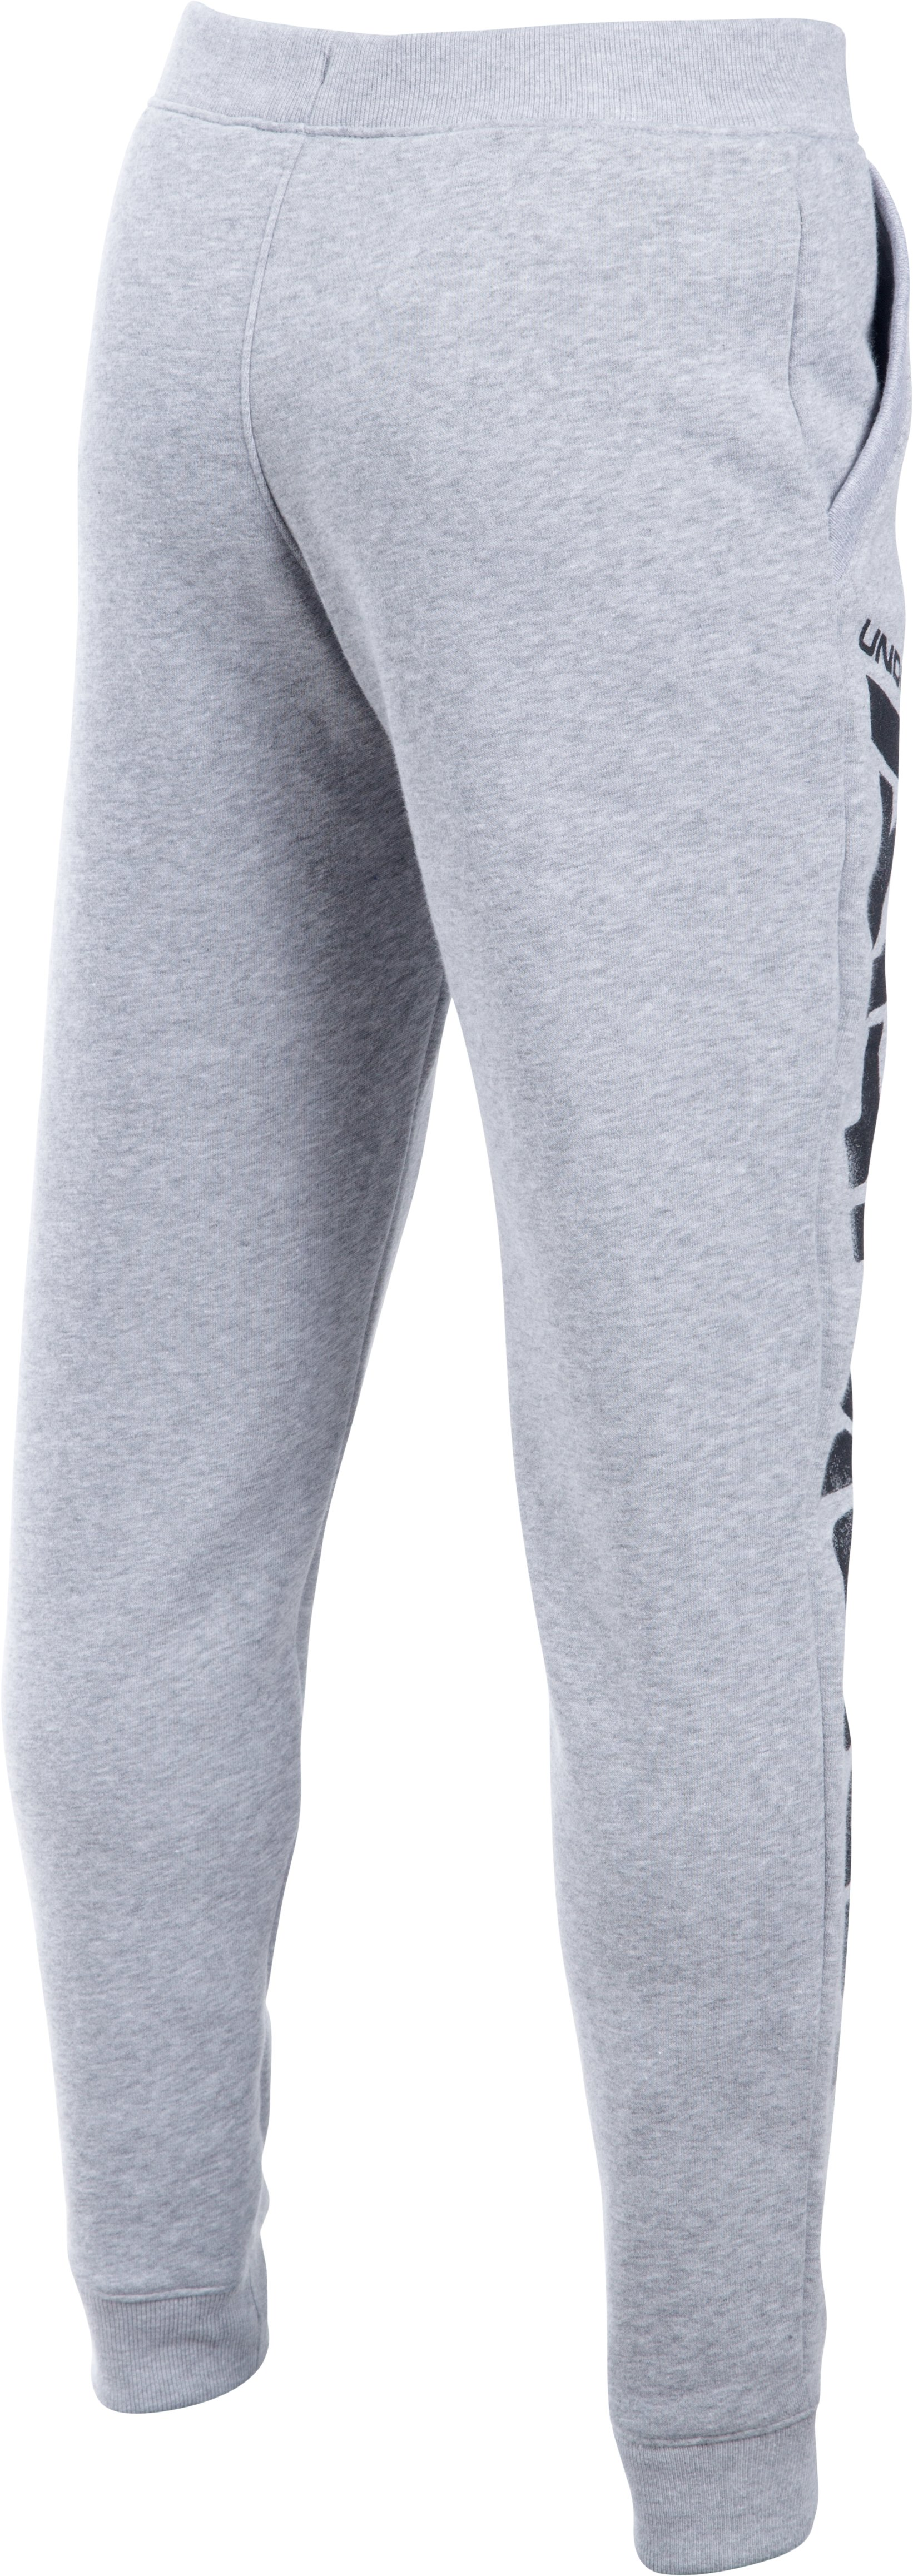 Boys' UA Sportstyle Fleece Jogger, True Gray Heather,